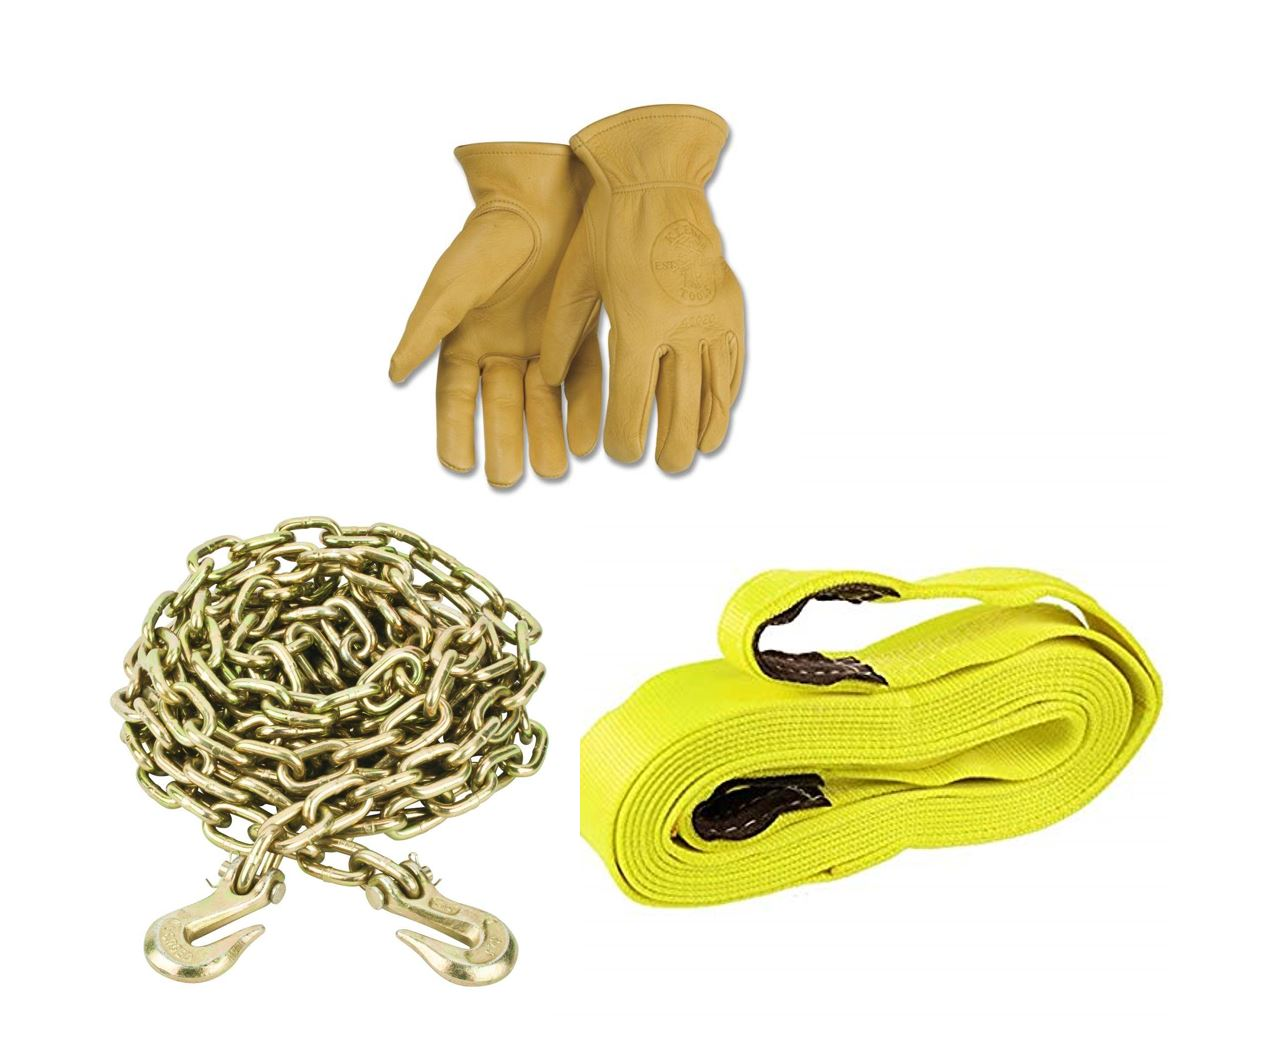 Carry tow chains, ropes, straps, wedges, small garden tools, knives gloves ties down, oil, files, small fuel cans, hitch pins, wrenches and more in our 4 side storage bins